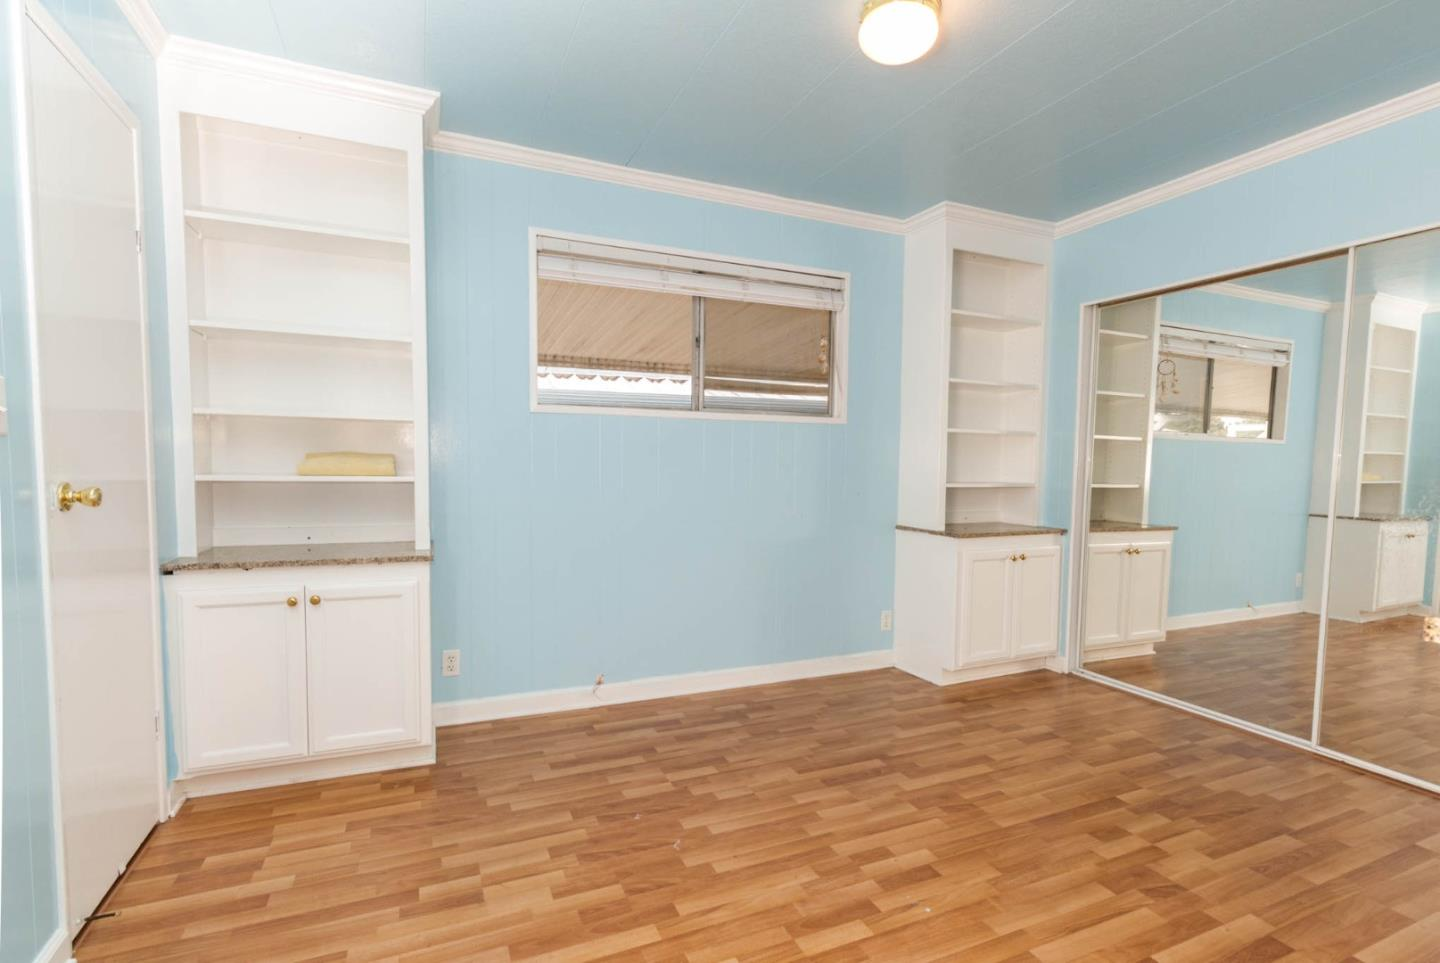 444 Whispering Pines Drive #134, Scotts Valley, CA 95066 $254,000 ...